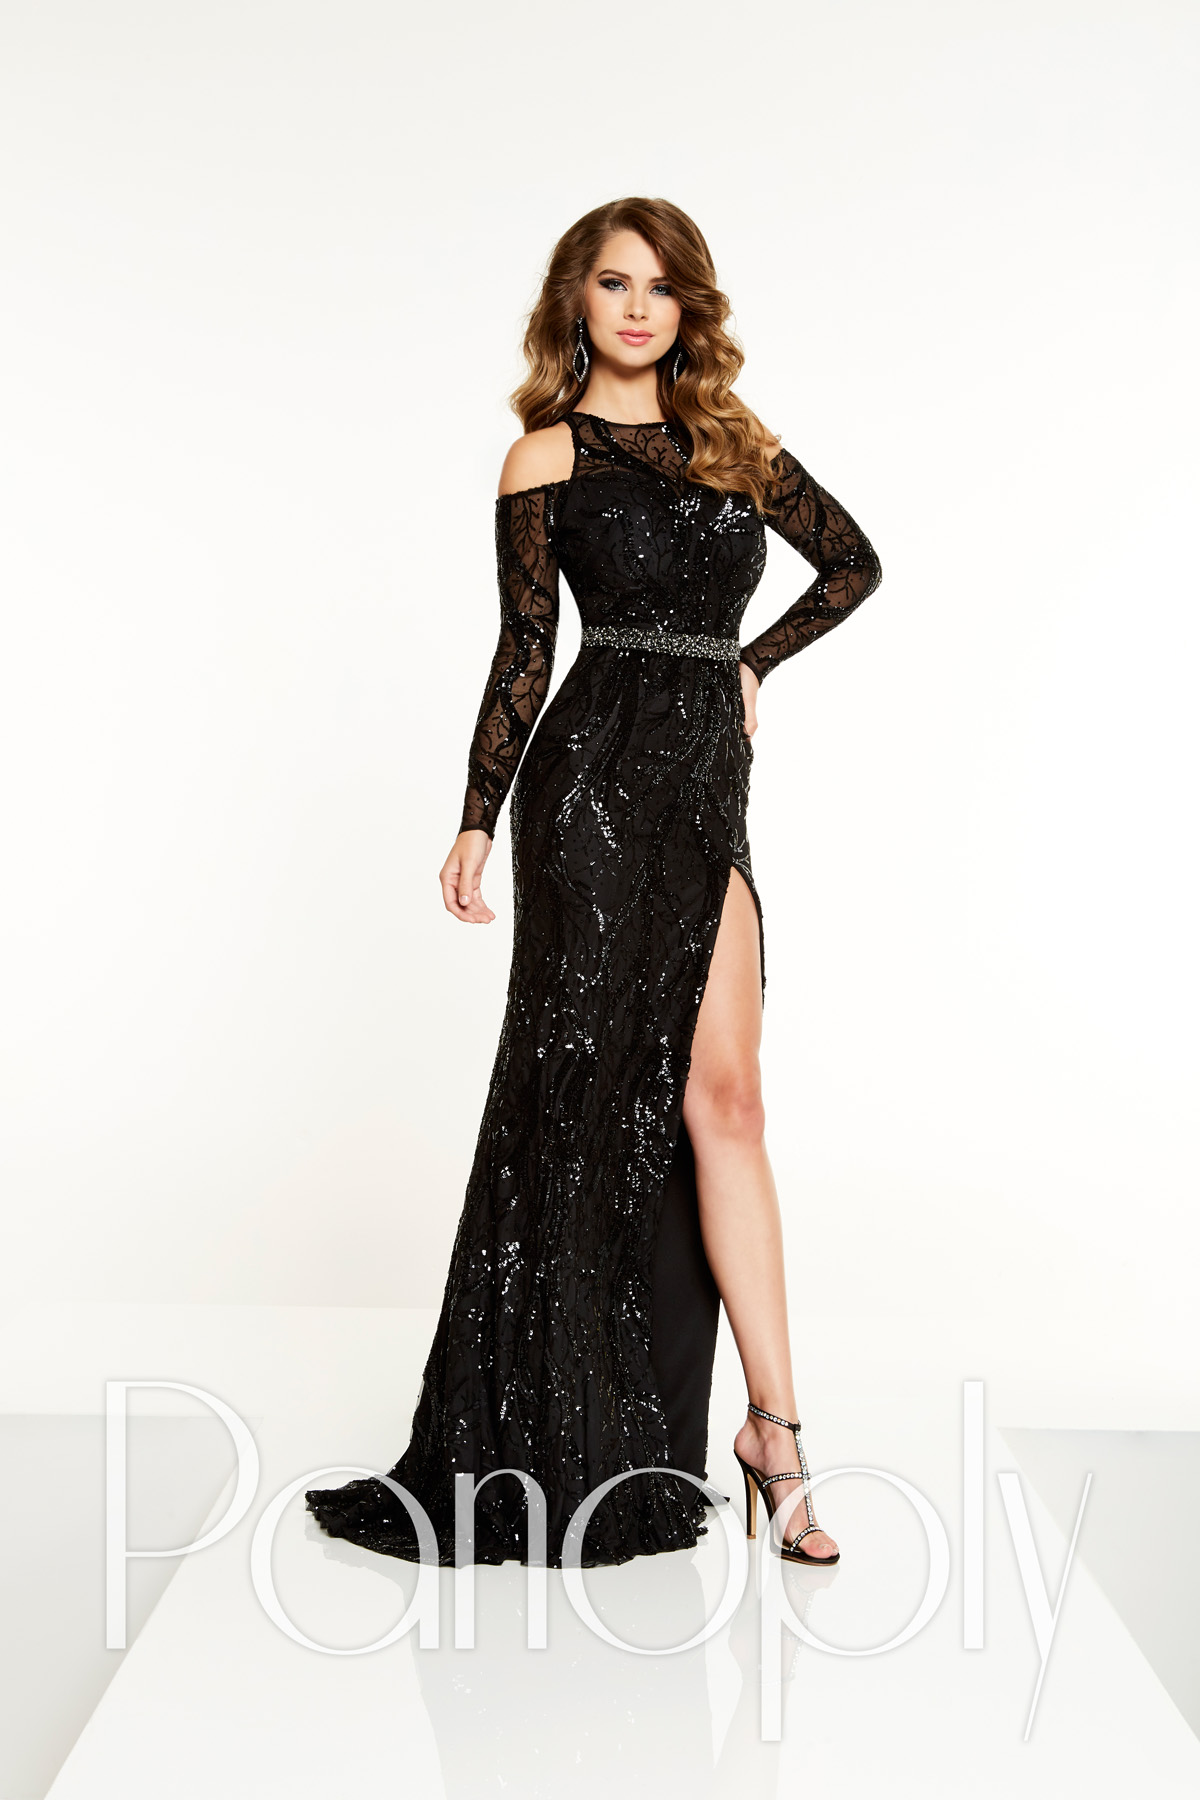 Panoply 14868 is available in Black and in sizes 0-30.